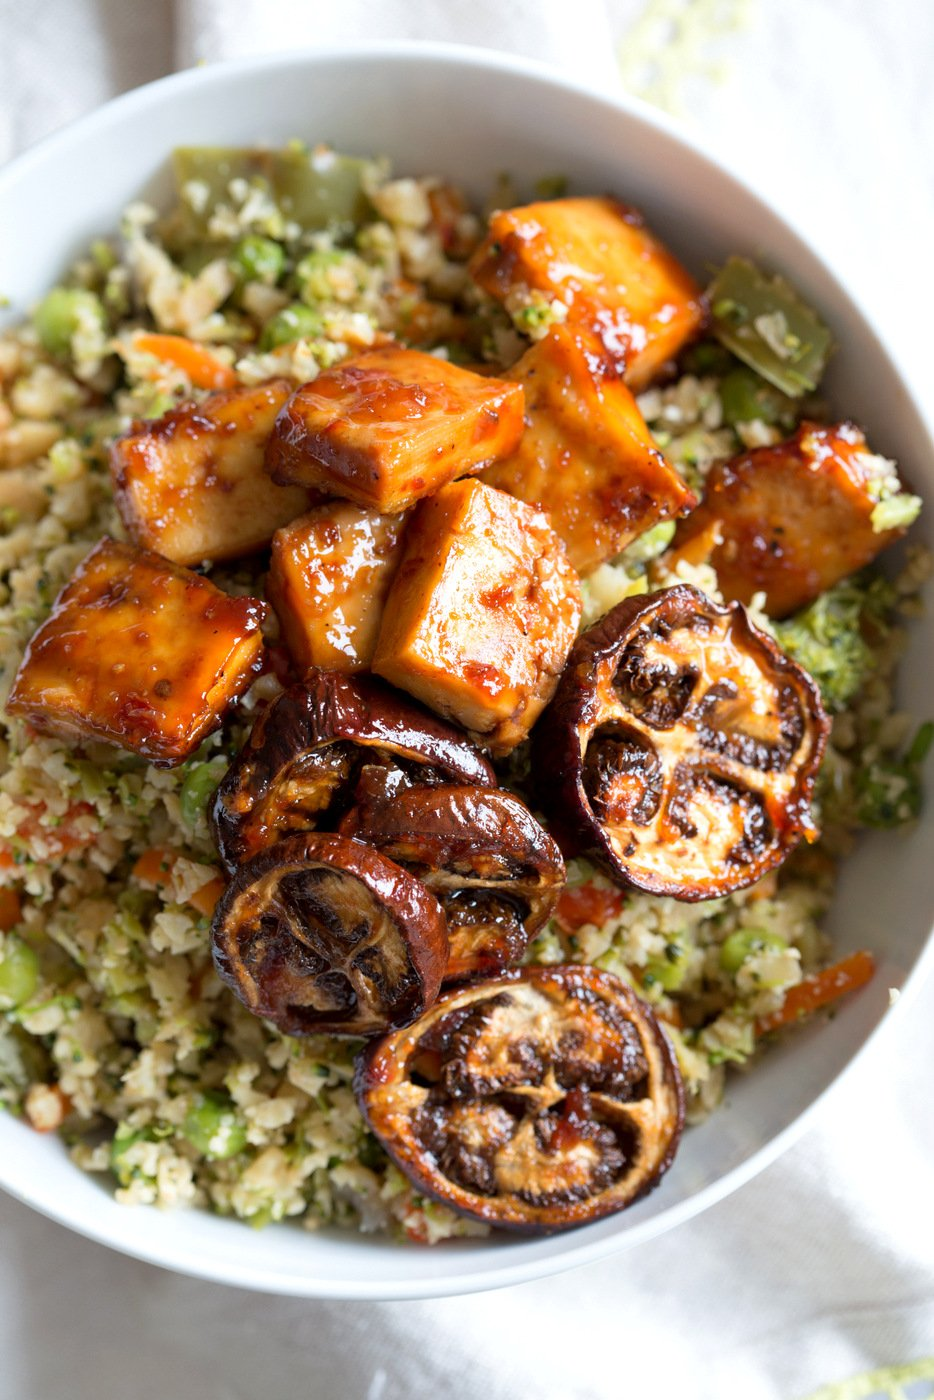 Eggplant & Tofu in Soy Lime Sauce - Baked Eggplant stir fry. Easy 1 Pot meal. Add other veggies of choice. #Vegan #Glutenfree #Nutfree #veganricha #Recipe  | VeganRicha.com